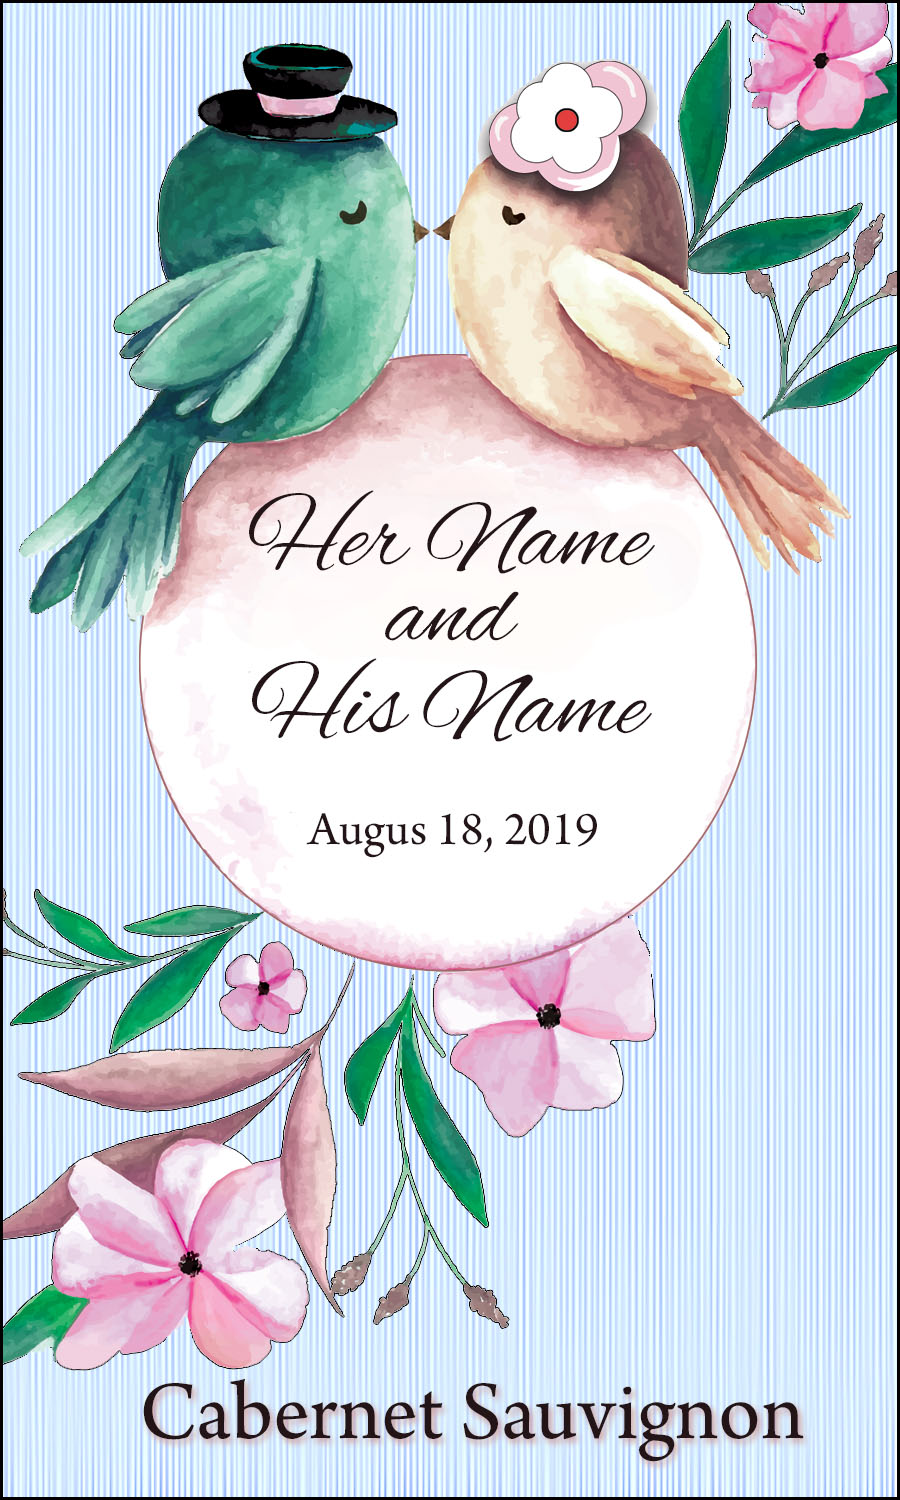 custom wedding wine label of two birds kissing for your personalized wine bottles